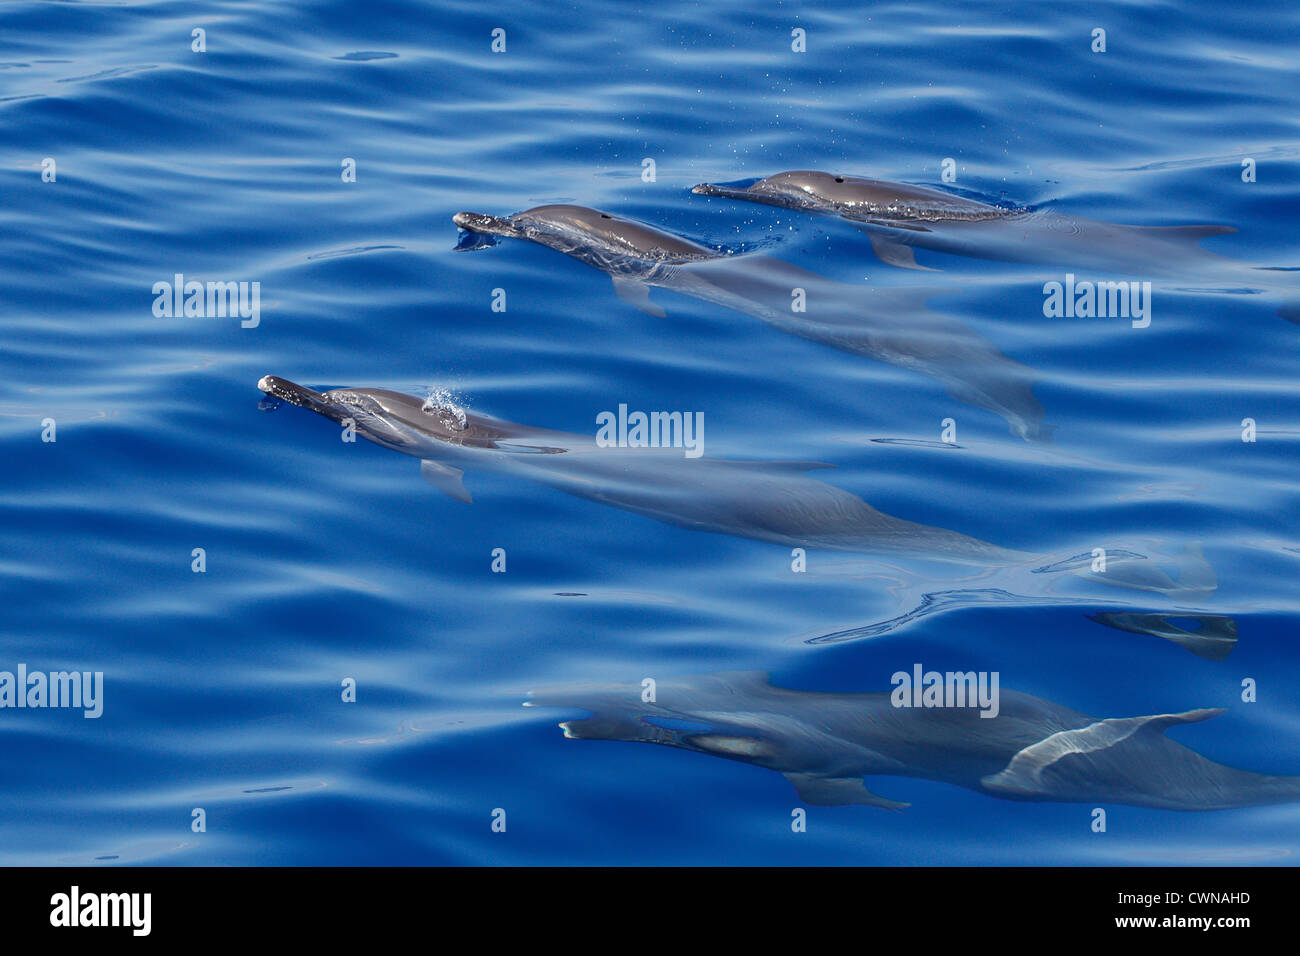 Pantropical Spotted Dolphins, Stenella attenuata, Schlankdelfine, Maldives, group surfacing - Stock Image